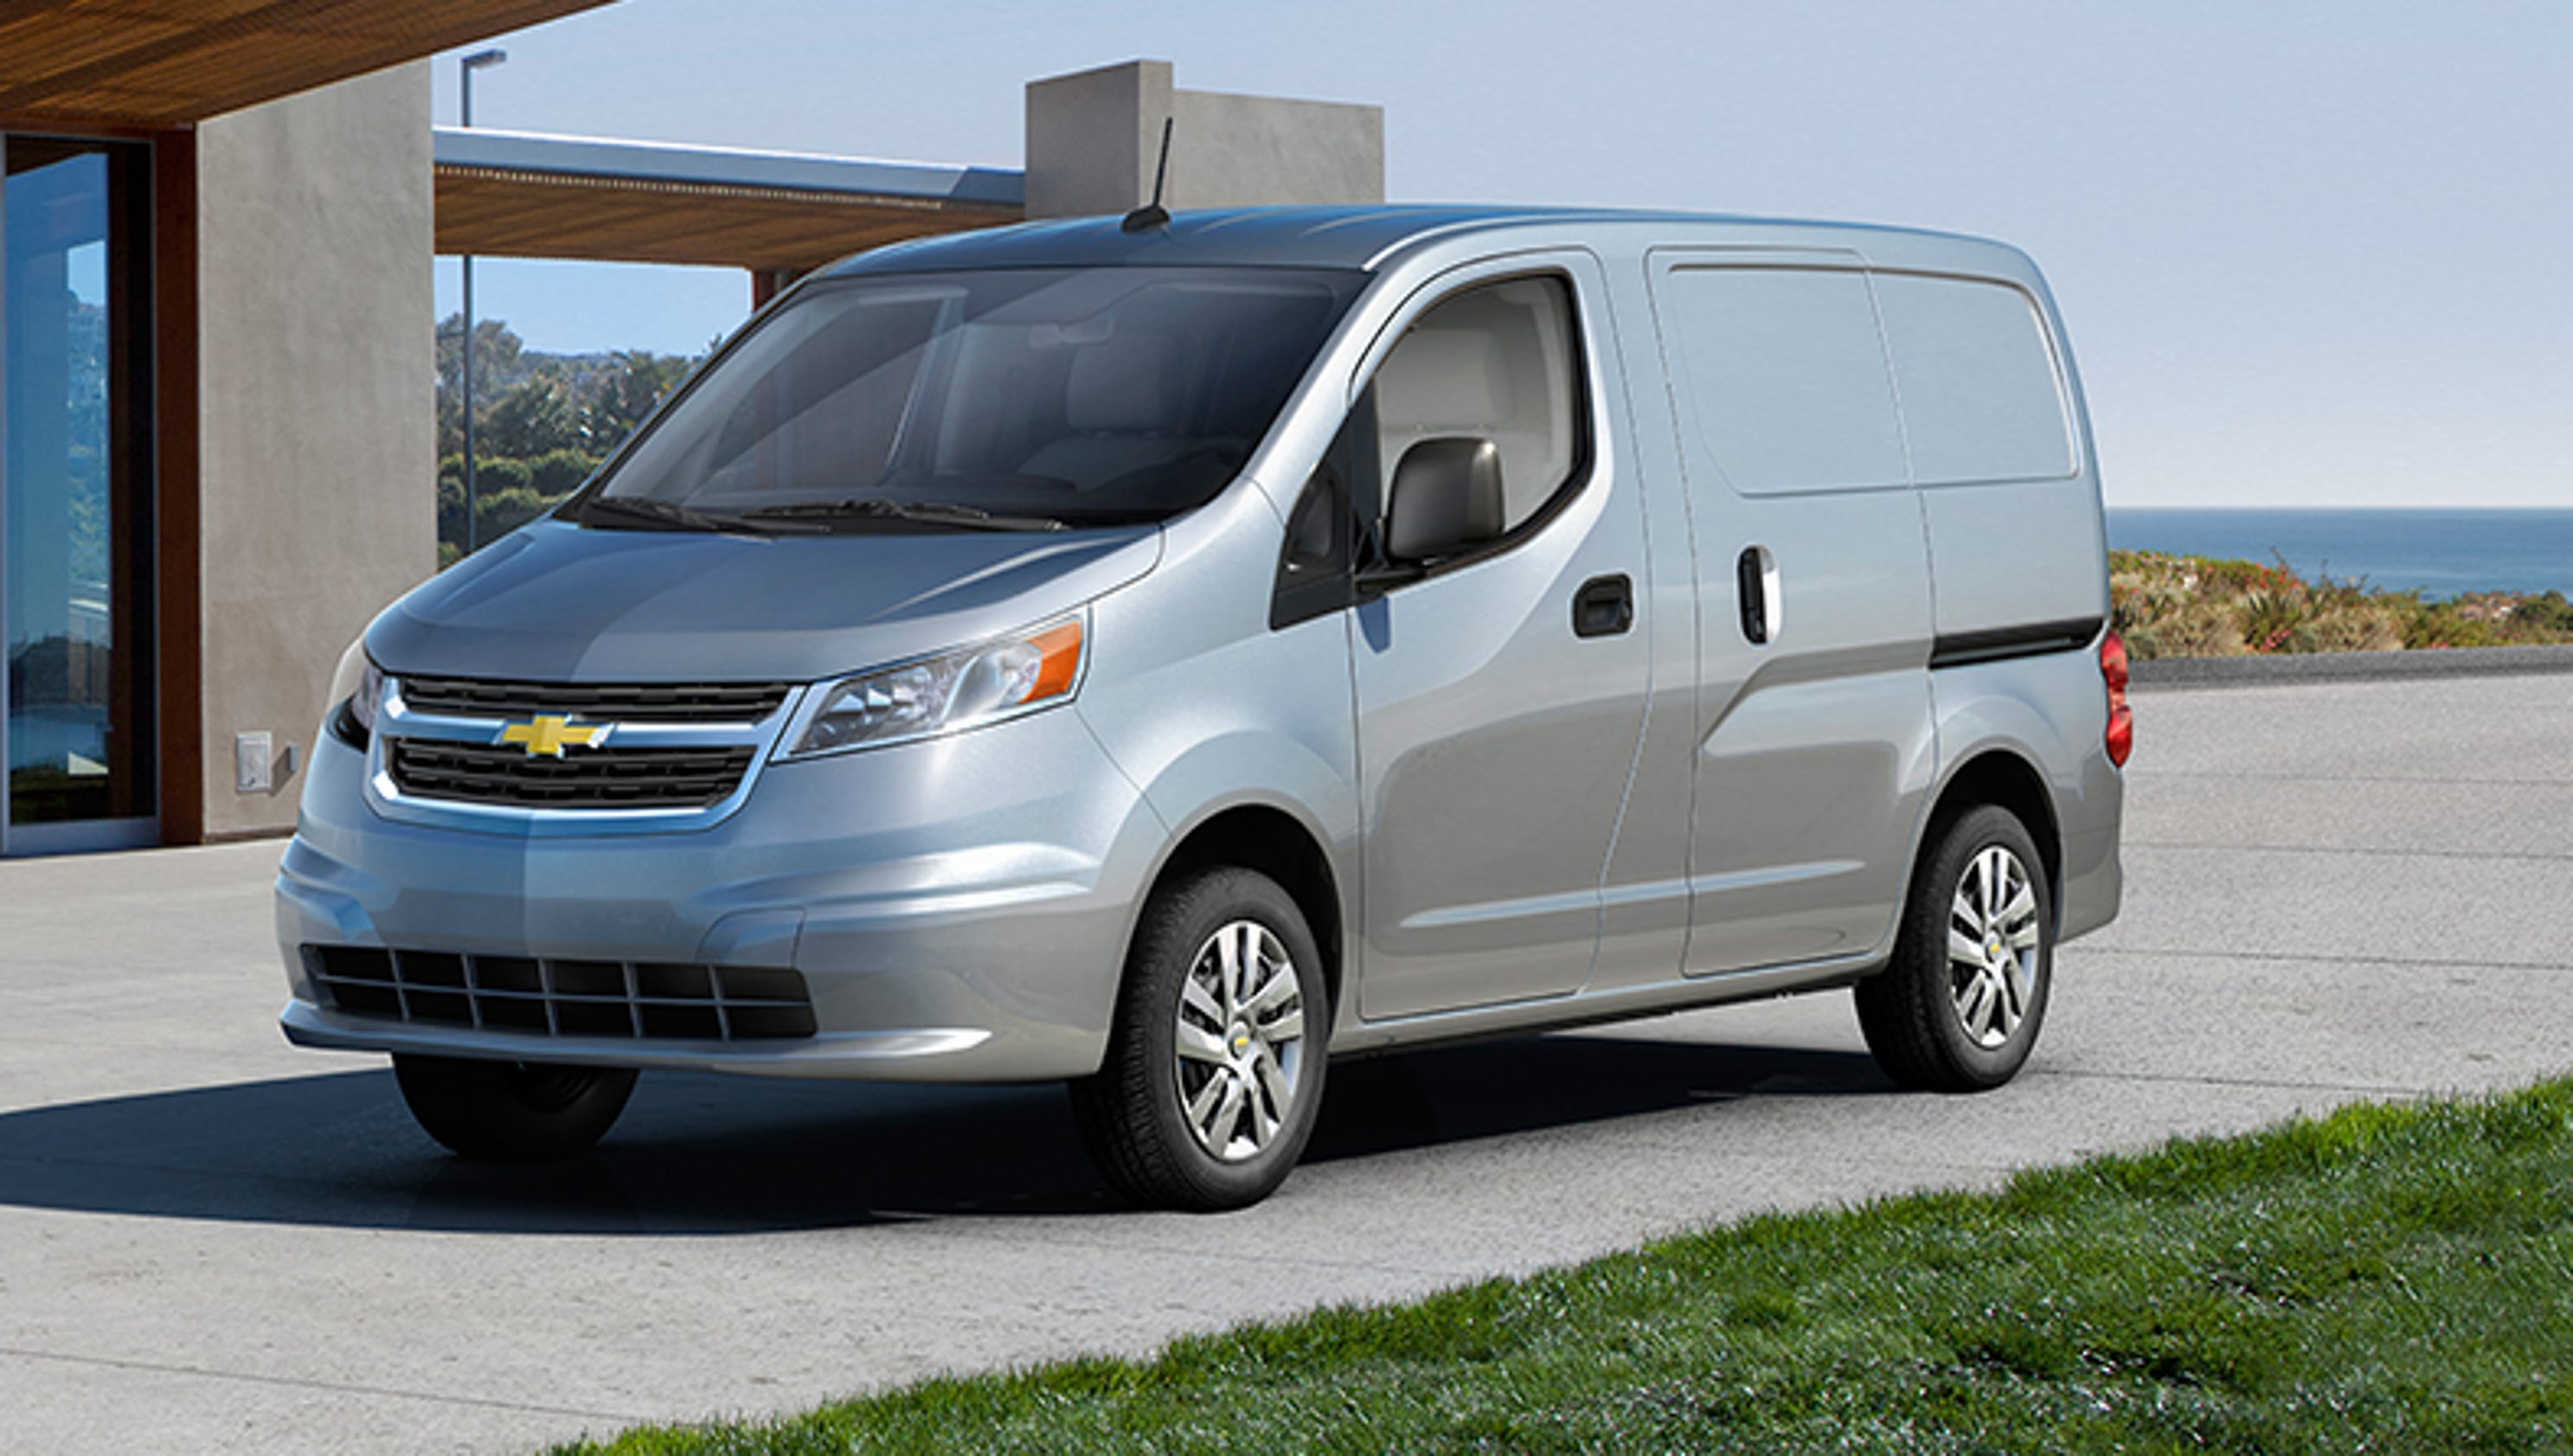 chevrolet city express cargo van. Black Bedroom Furniture Sets. Home Design Ideas